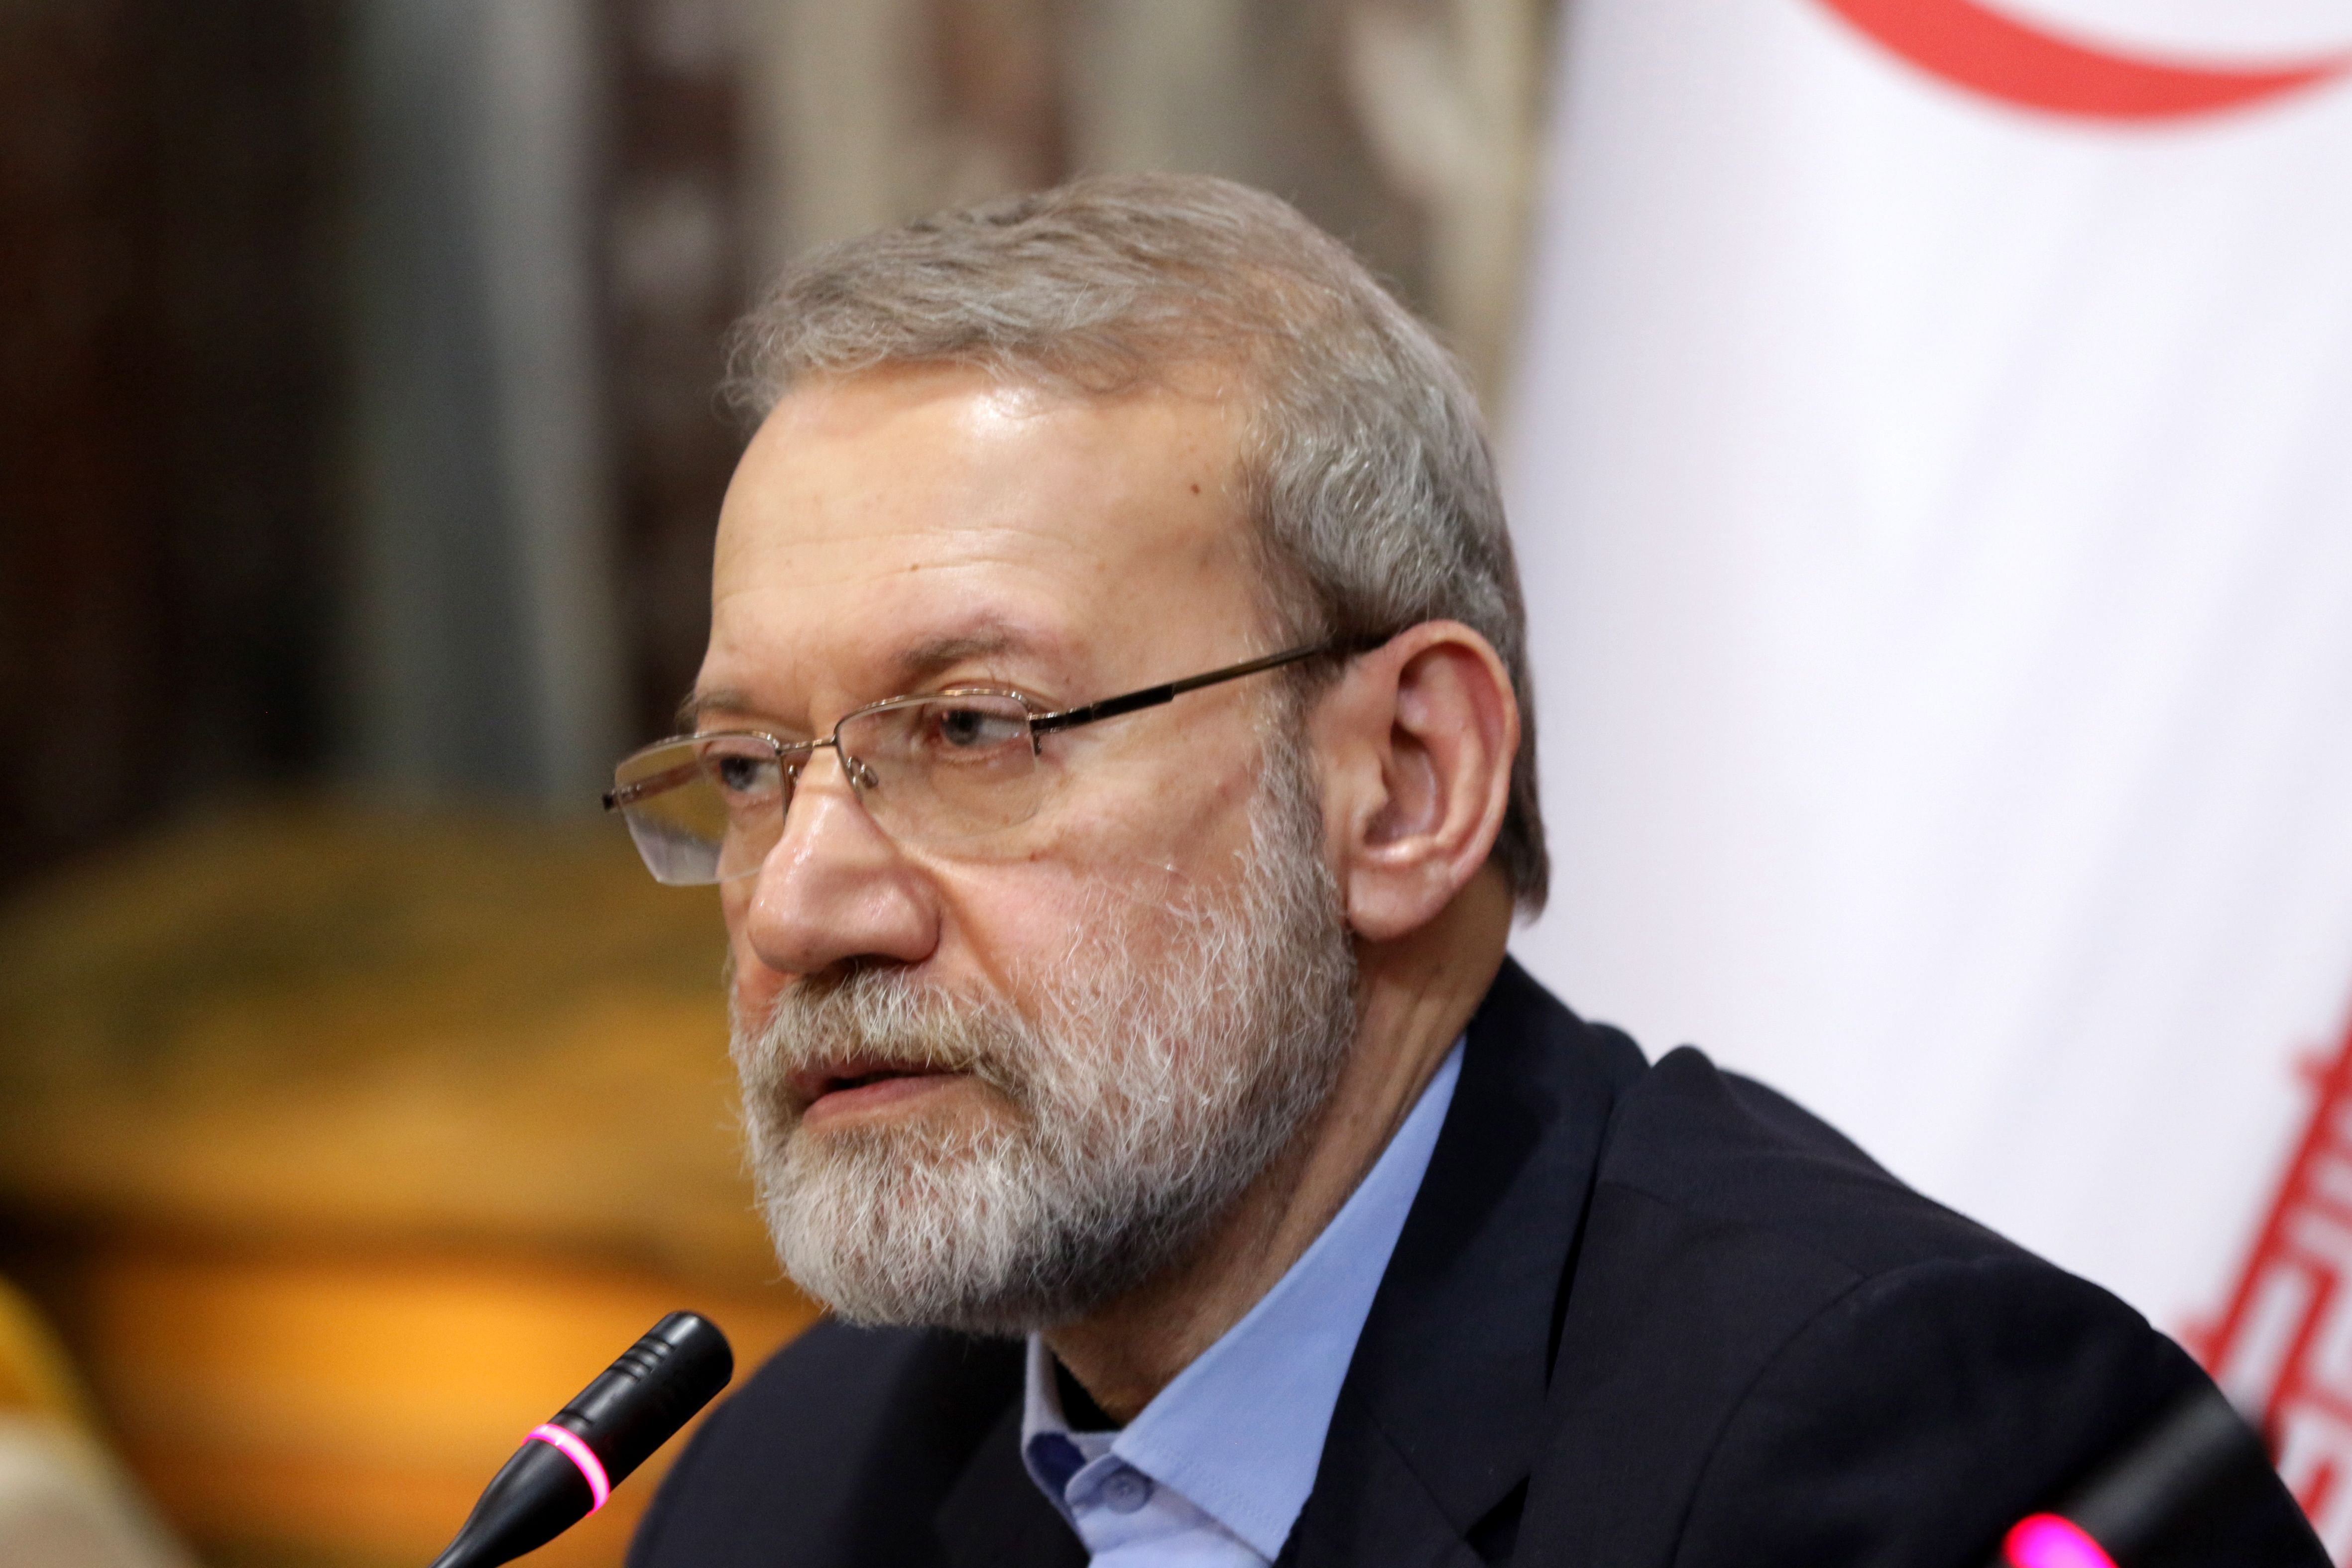 Iranian Parliament Speaker Ali Larijani speaks during a press conference in Damascus, Syria, on February 16.